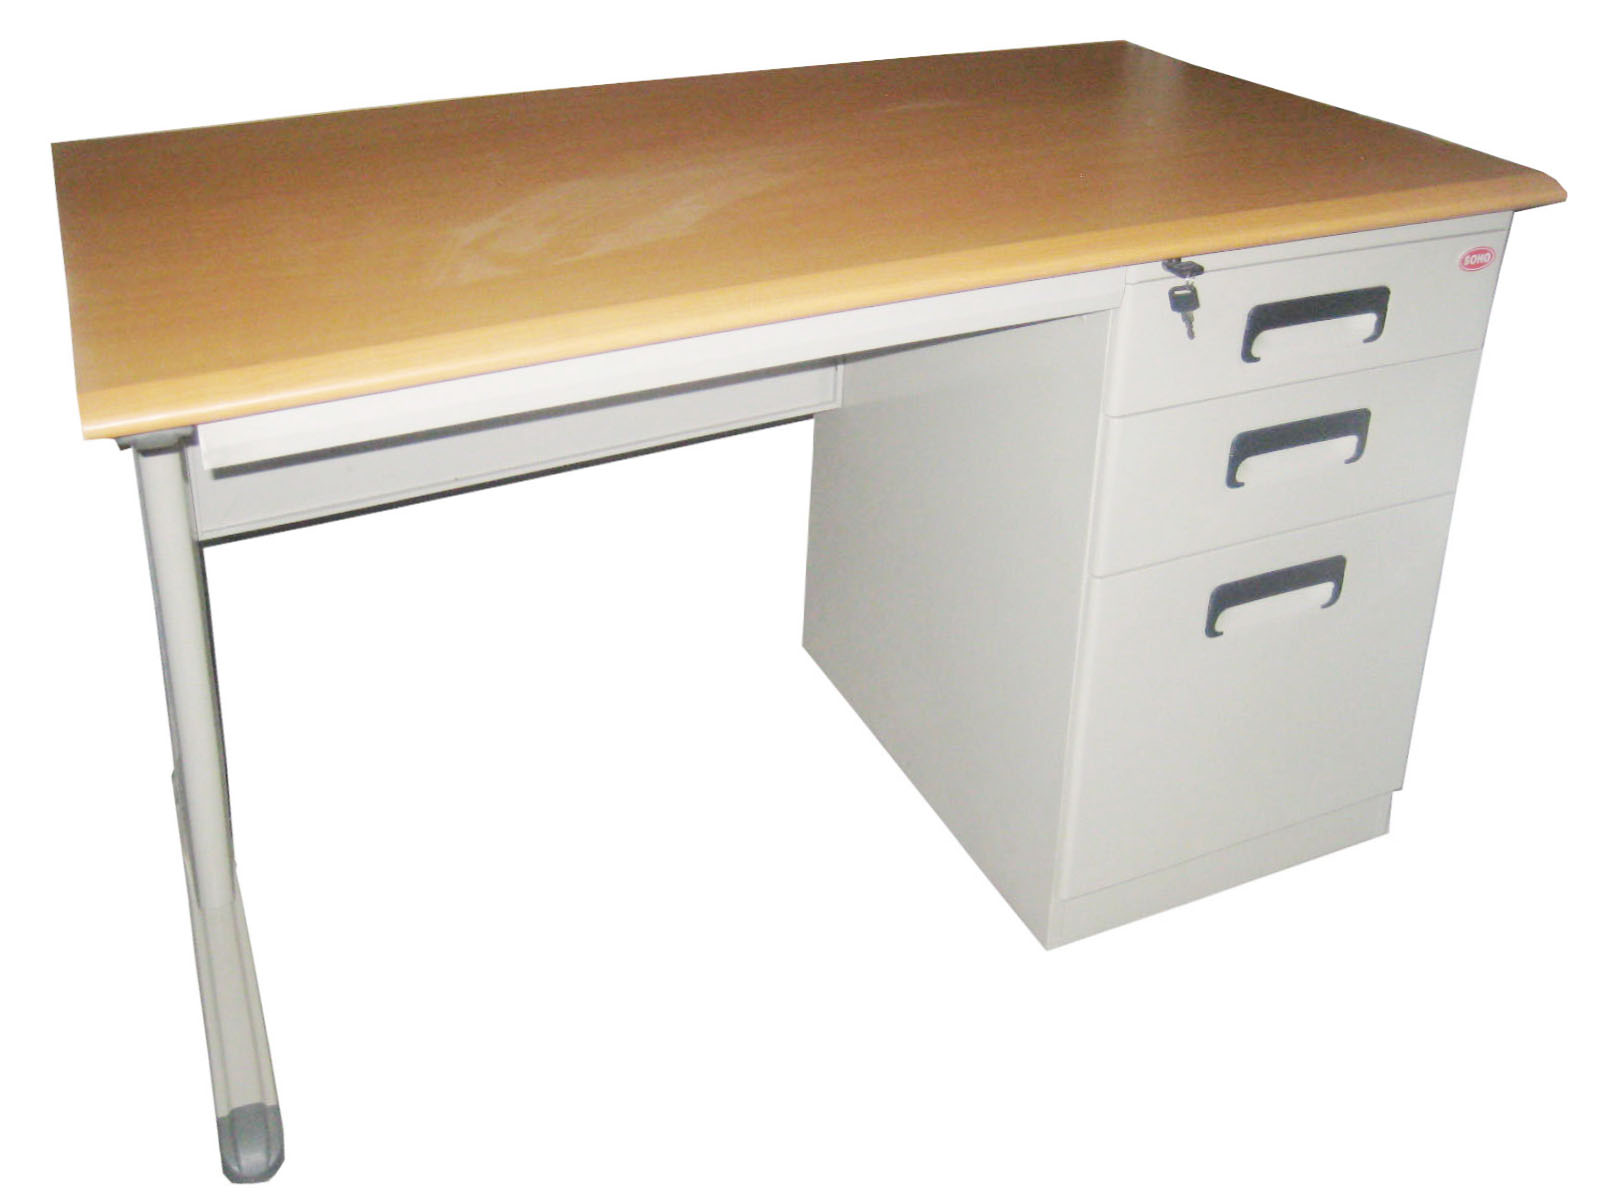 Soho FINLAND Office Desk,steel Frame Laminated Top W/ 4 Drawer Colour: GRAY  (L120*W70*H75 Cm)